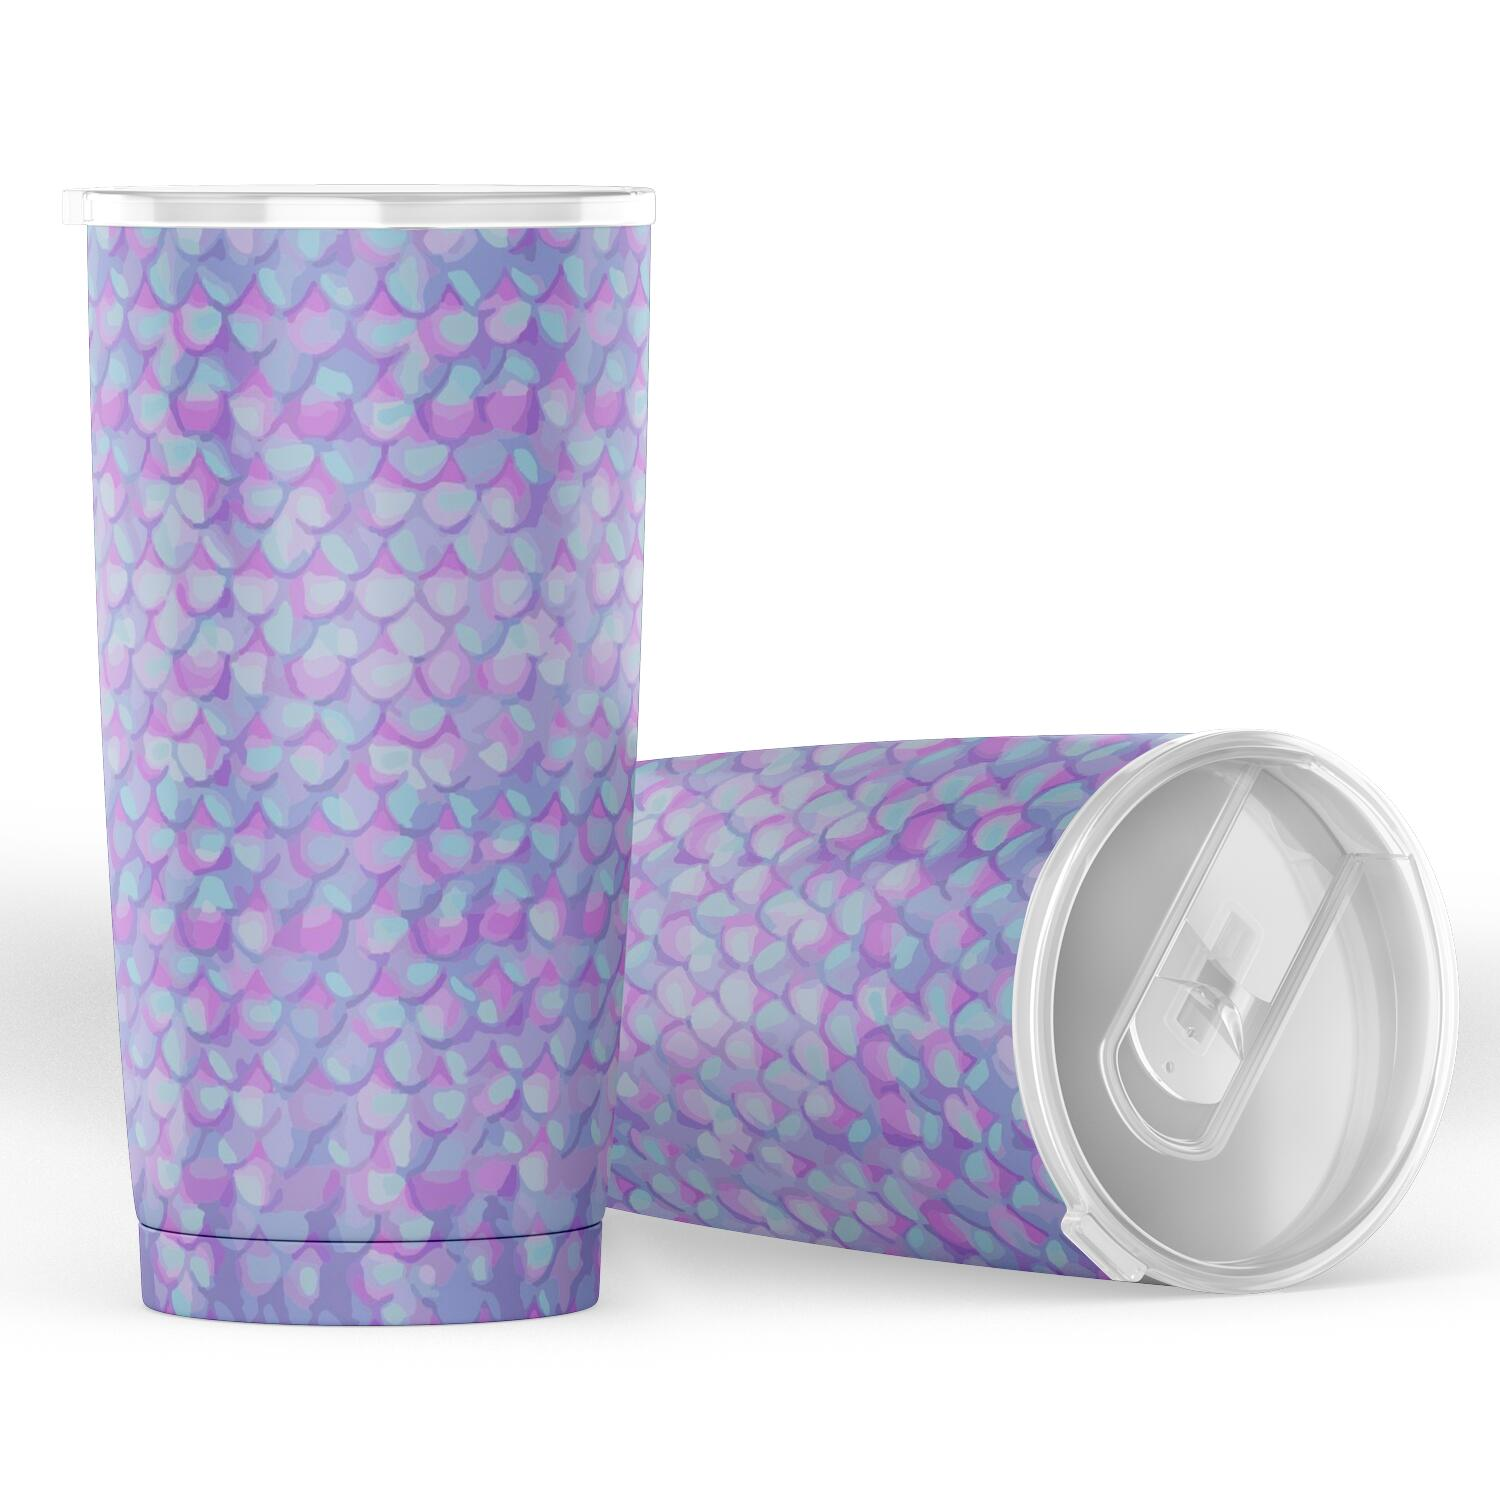 Mermaid Tumbler